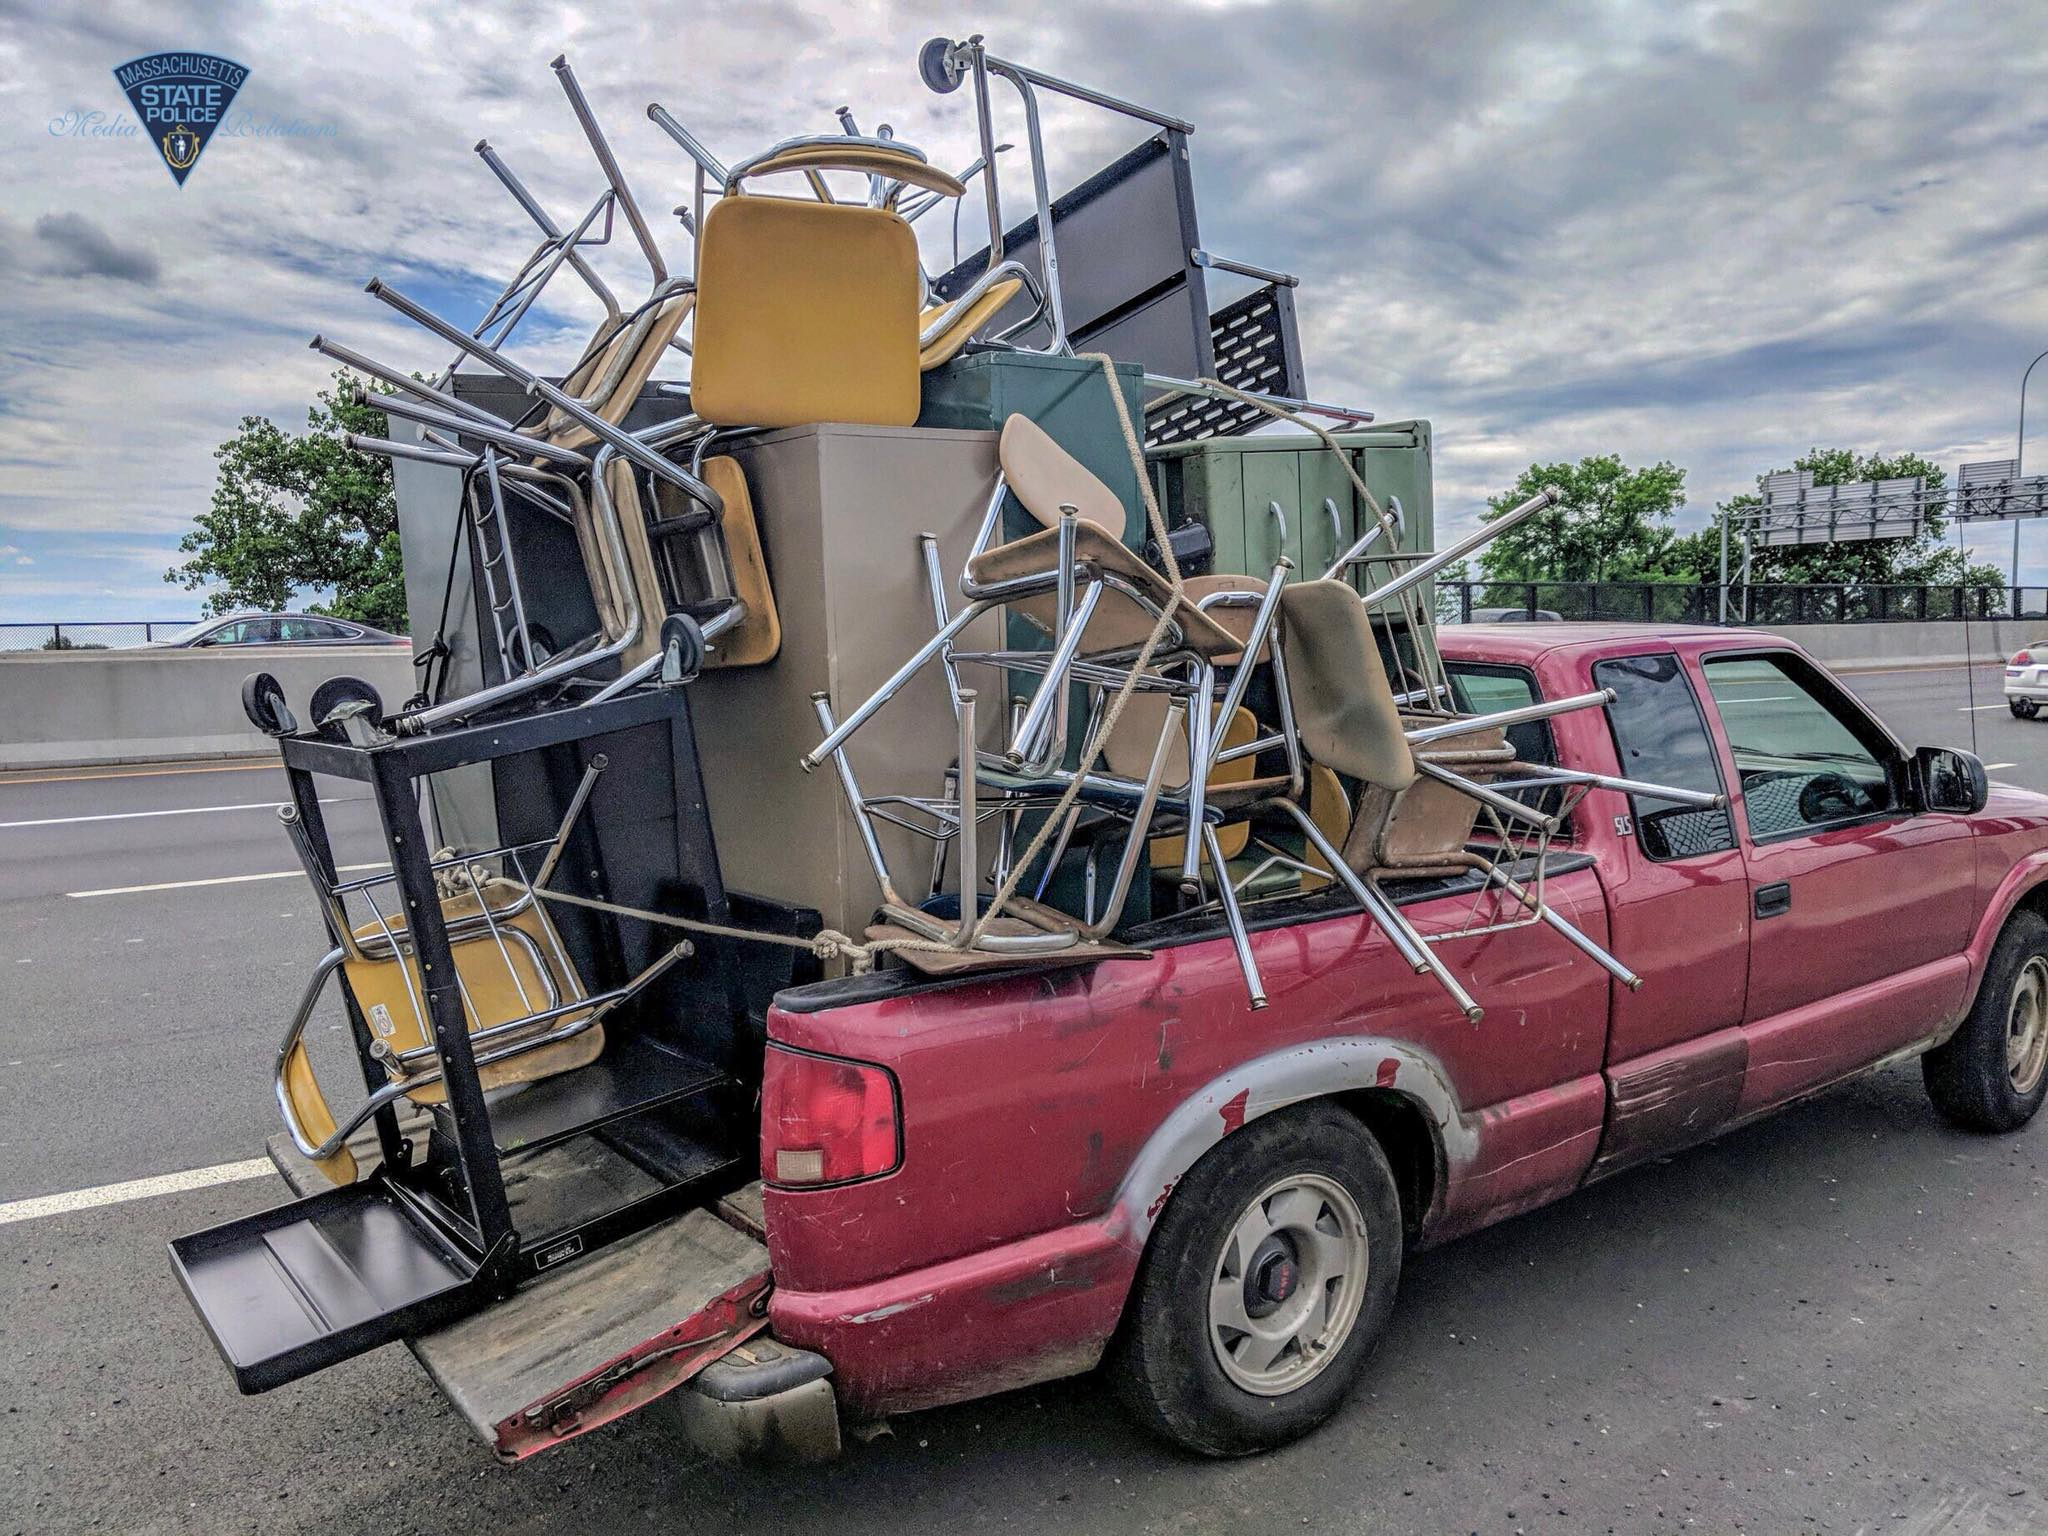 Massachusetts State Police released this image of a pickup truck piled with office furniture on Interstate 91 in Springfield.{ }